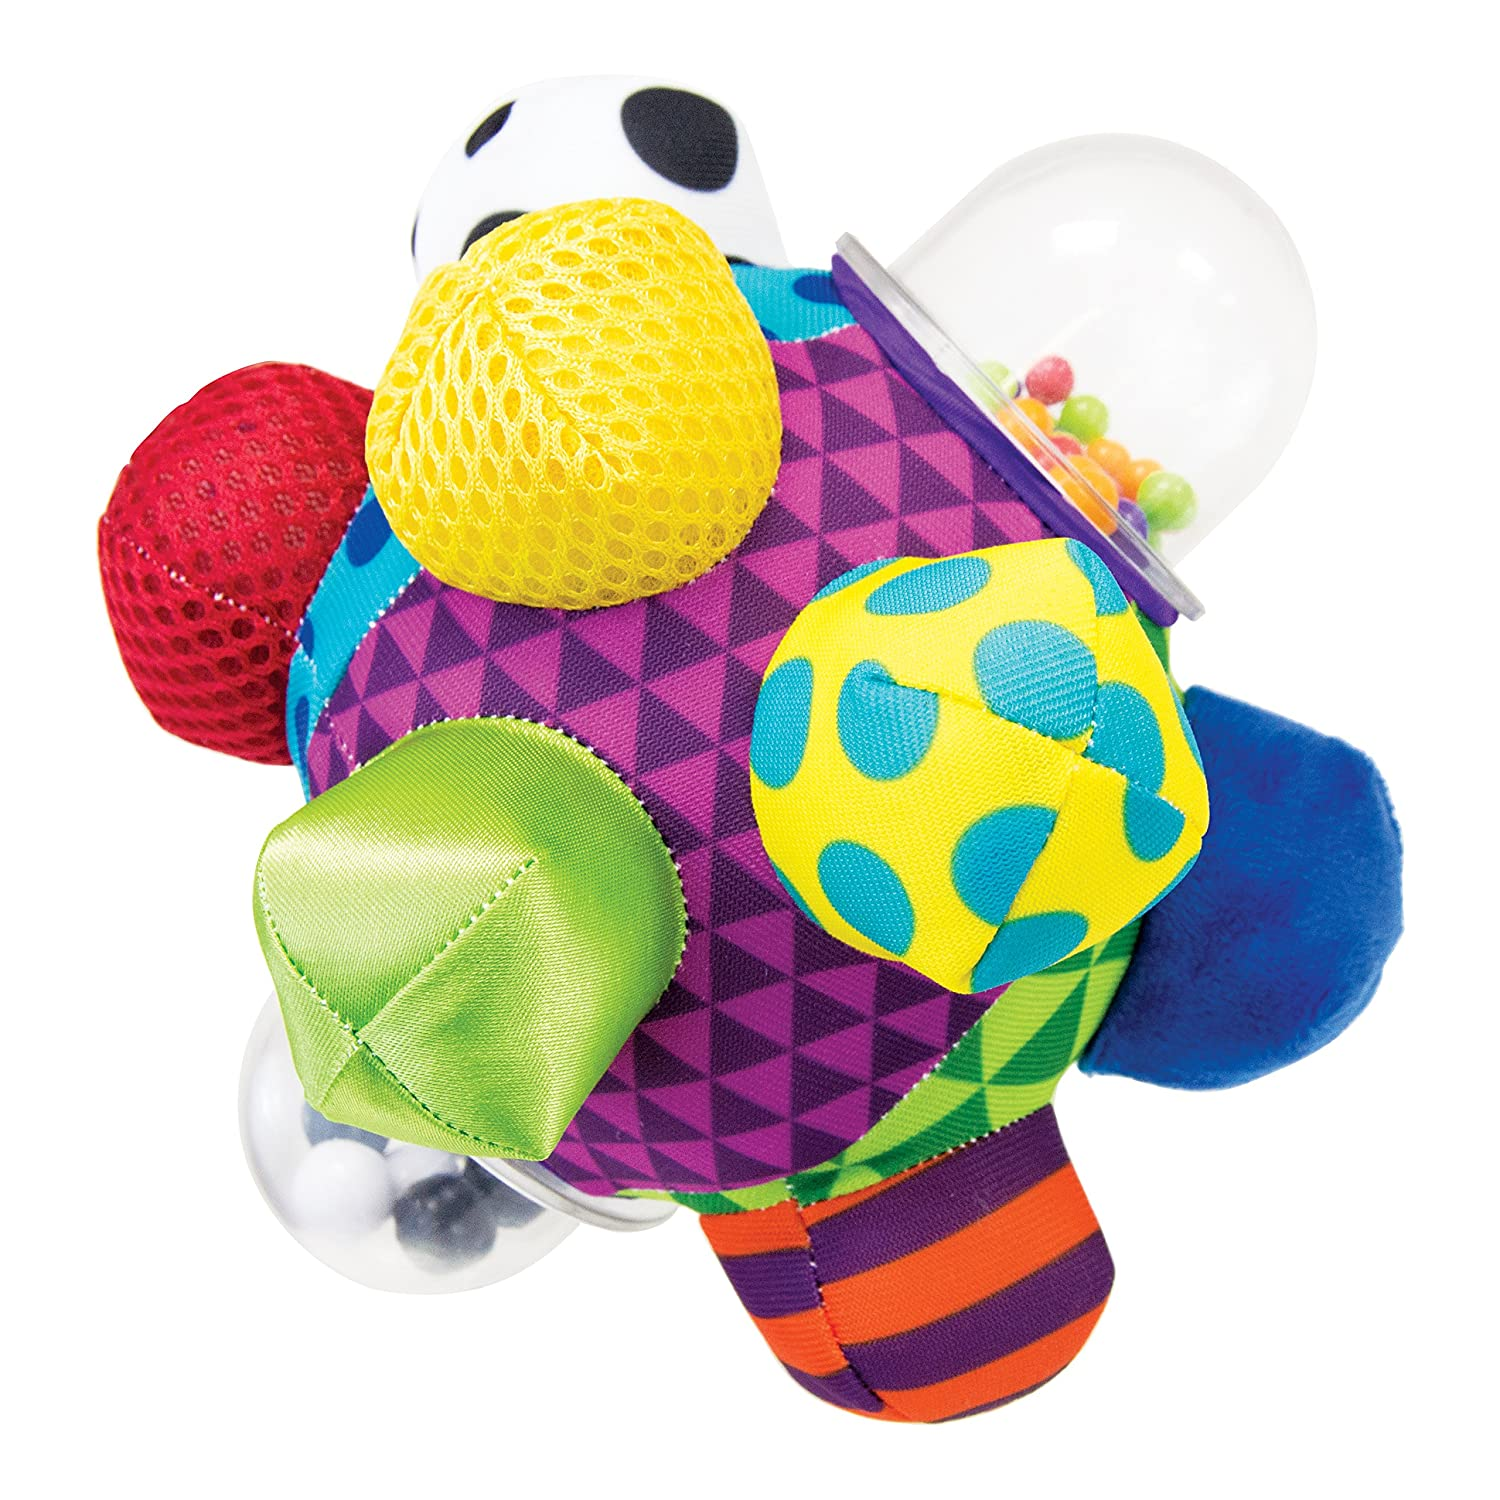 Sassy Developmental Bumpy Ball 80109